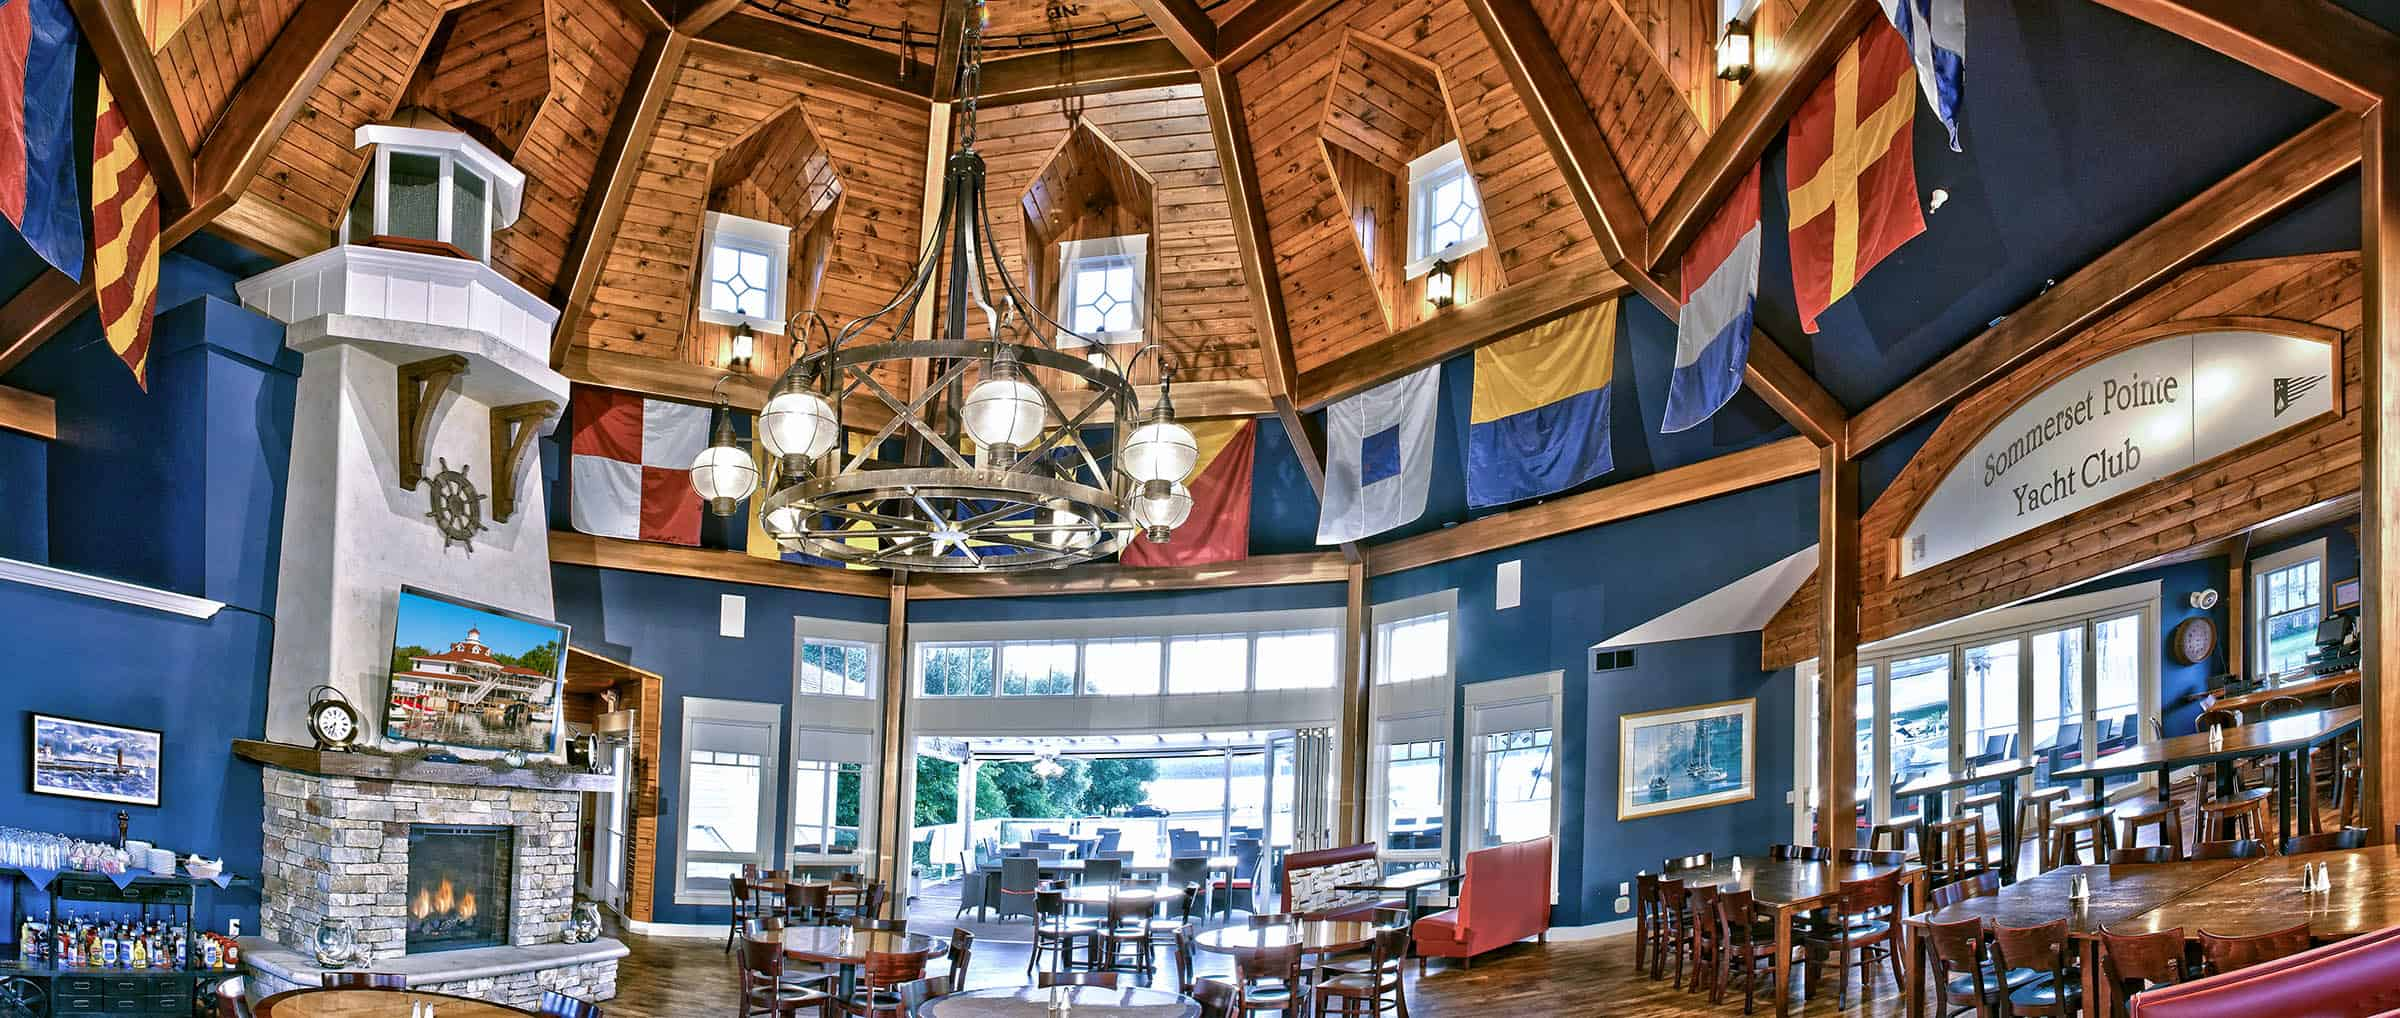 7 Must-See Boater Friendly Restaurants - The Awesome Mitten